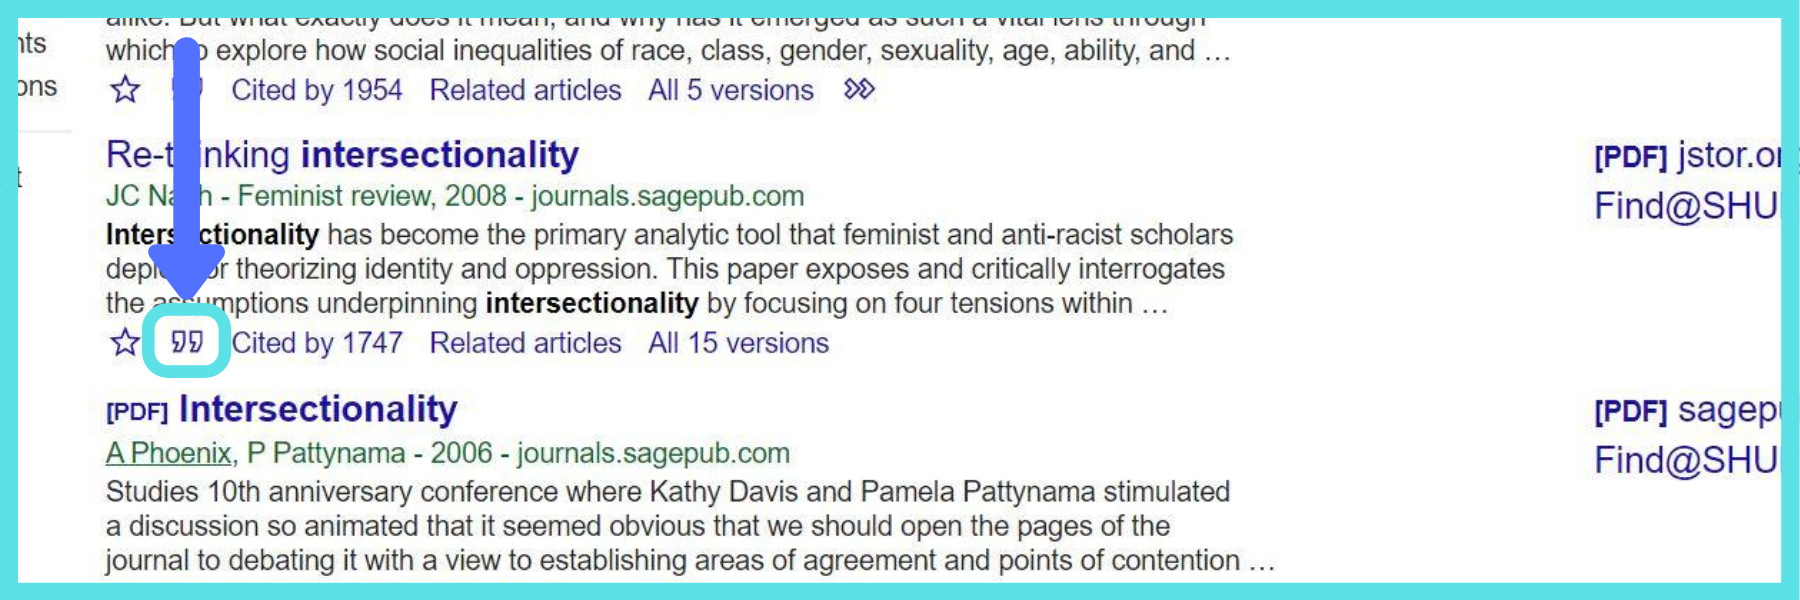 screenshot of a Google Scholar article indicating the quotation mark icon below which can be clicked to generate an automatic citation